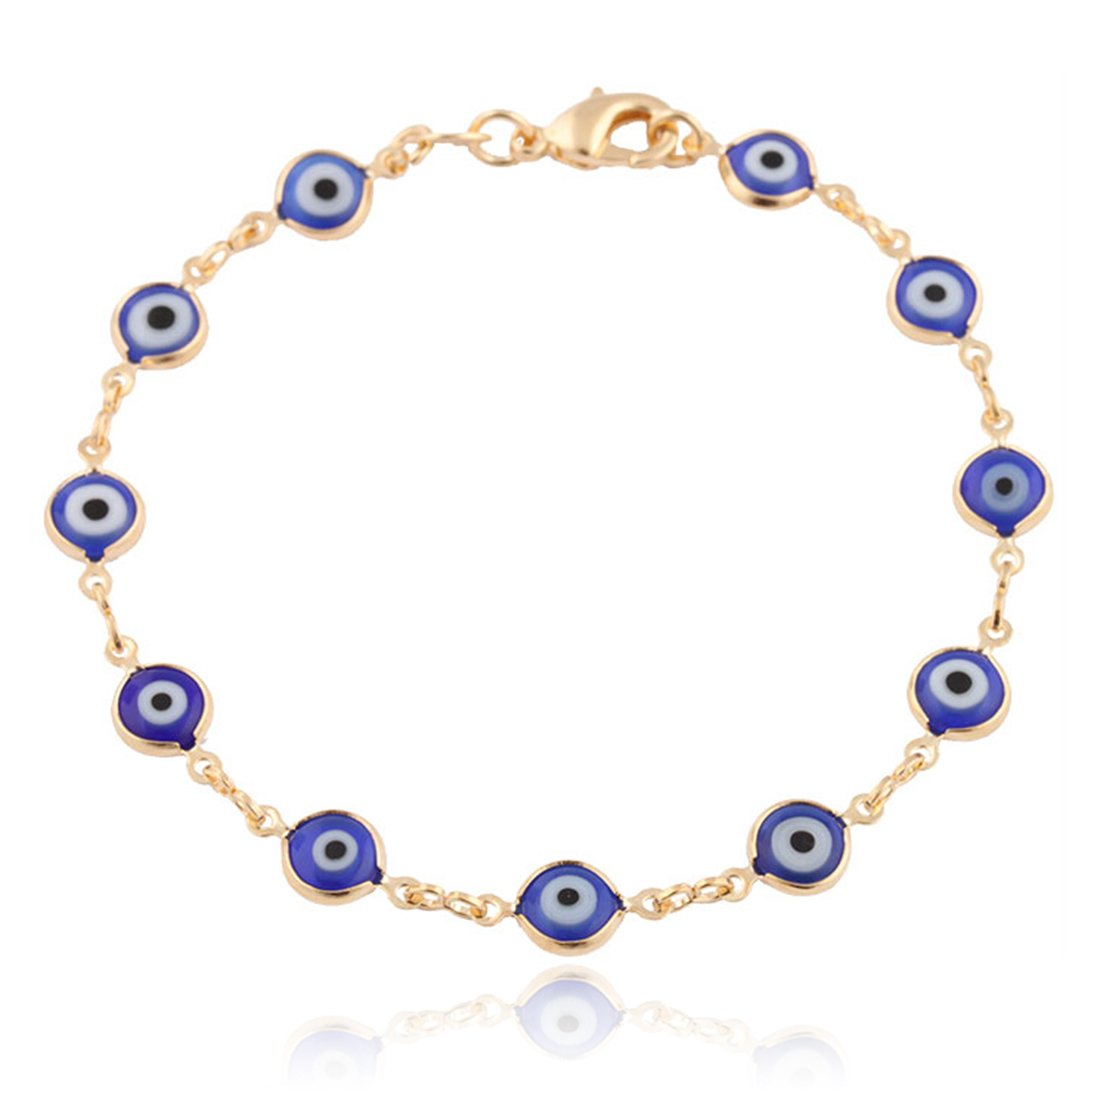 Gold Overlay with Navy Blue Mini Evil Eye Style 7.5 Inch Clasp Bracelet (T-326)